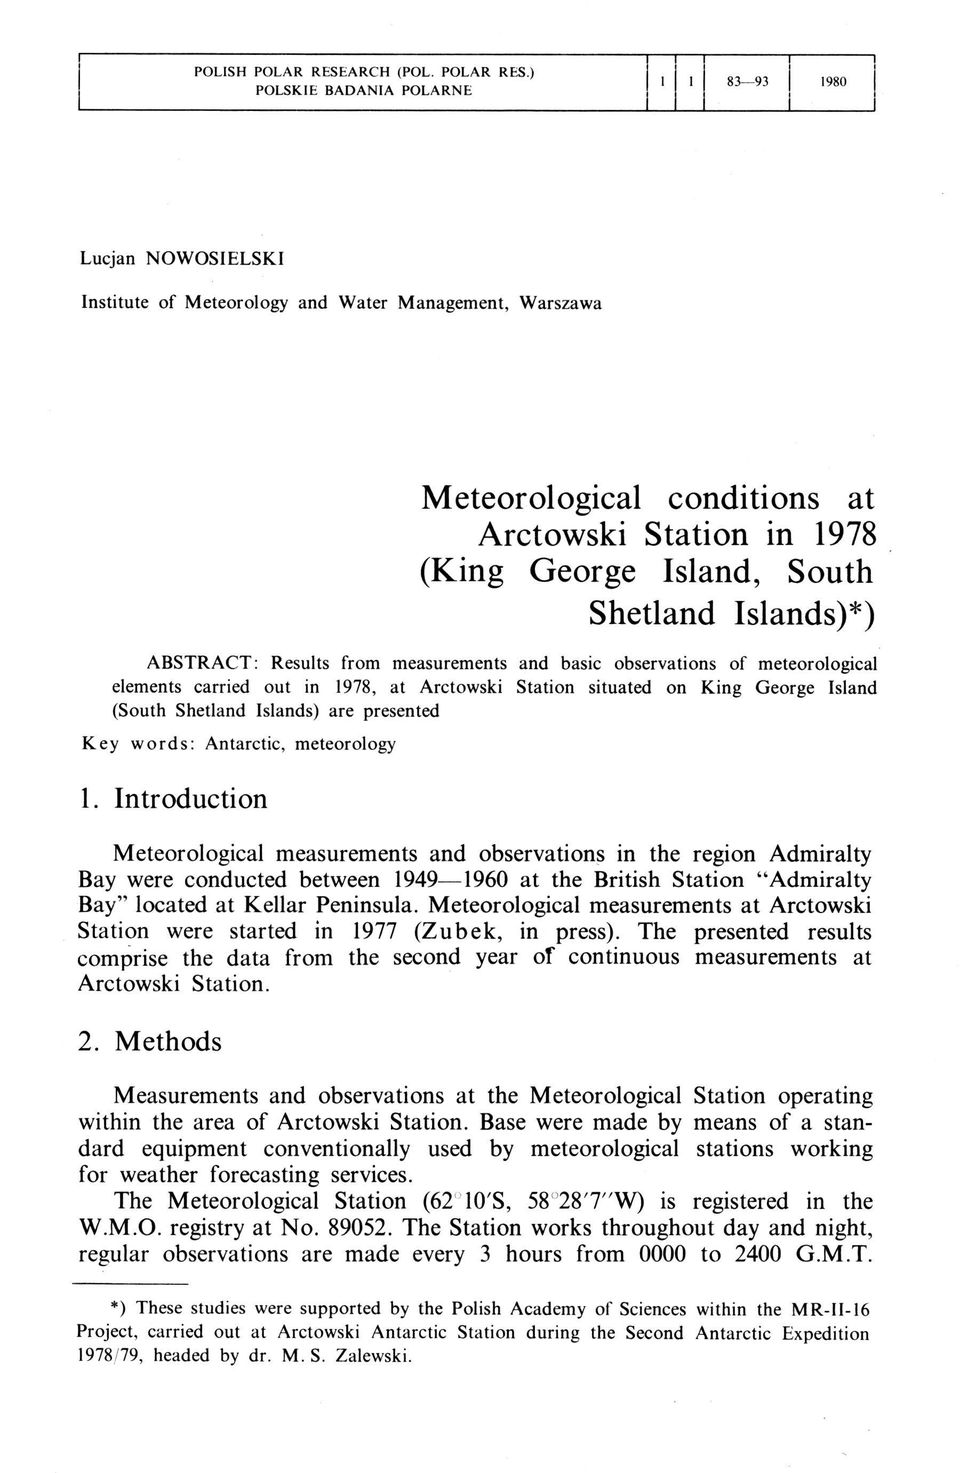 ) POLSKIE BADANIA POLARNE 1 1 8 9 1980 Lucjan NOWOSIELSKI Institute of Meteorology and Water Management, Warszawa Meteorological conditions at Arctowski Station in 1978 (King George Island, South